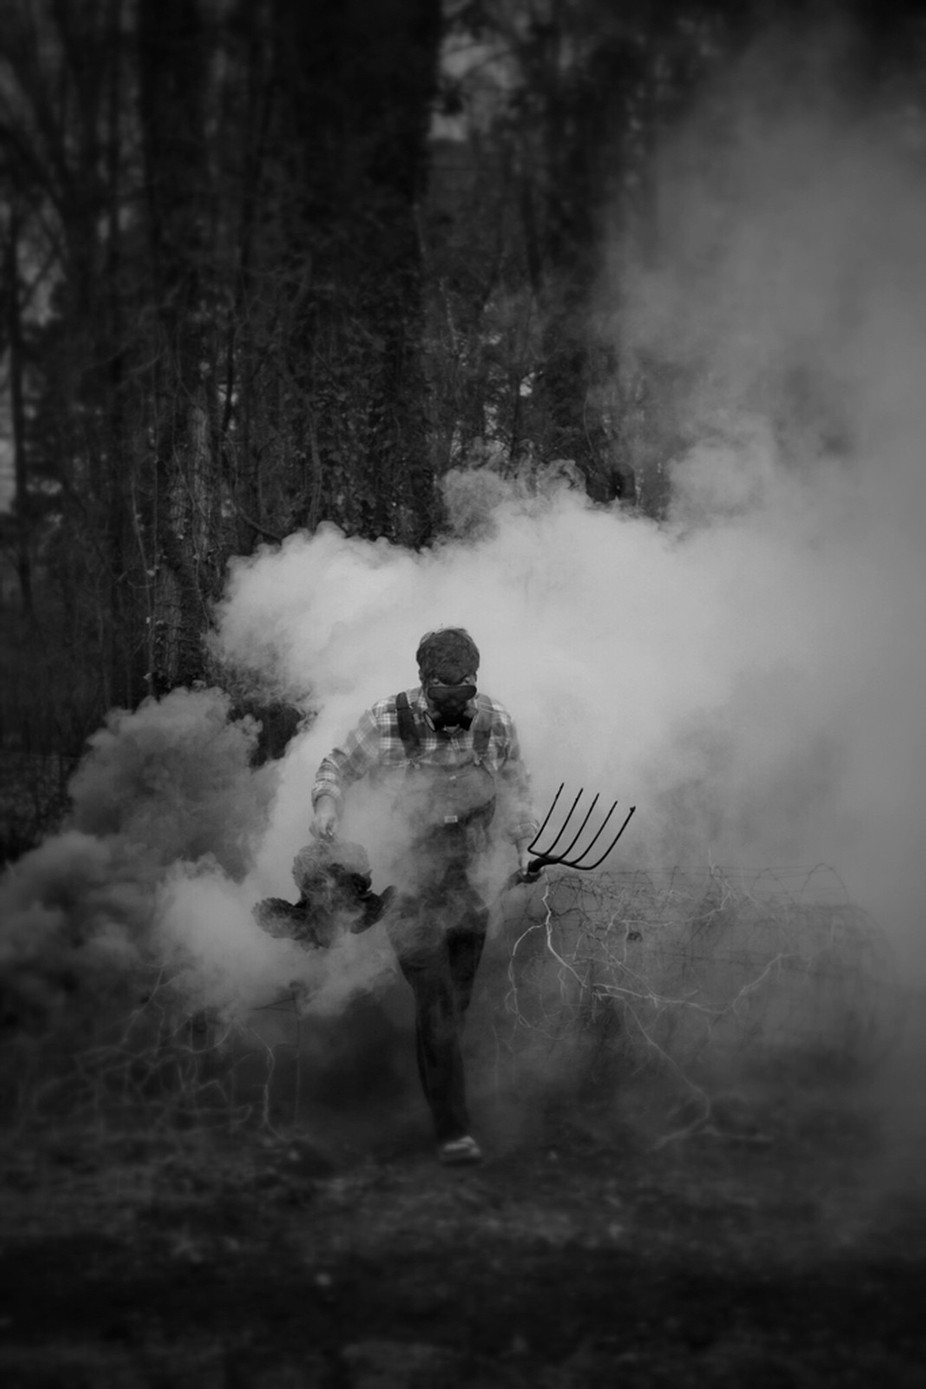 The mystery farmer  by StephenLittlePhotography - Everything Smoke Photo Contest